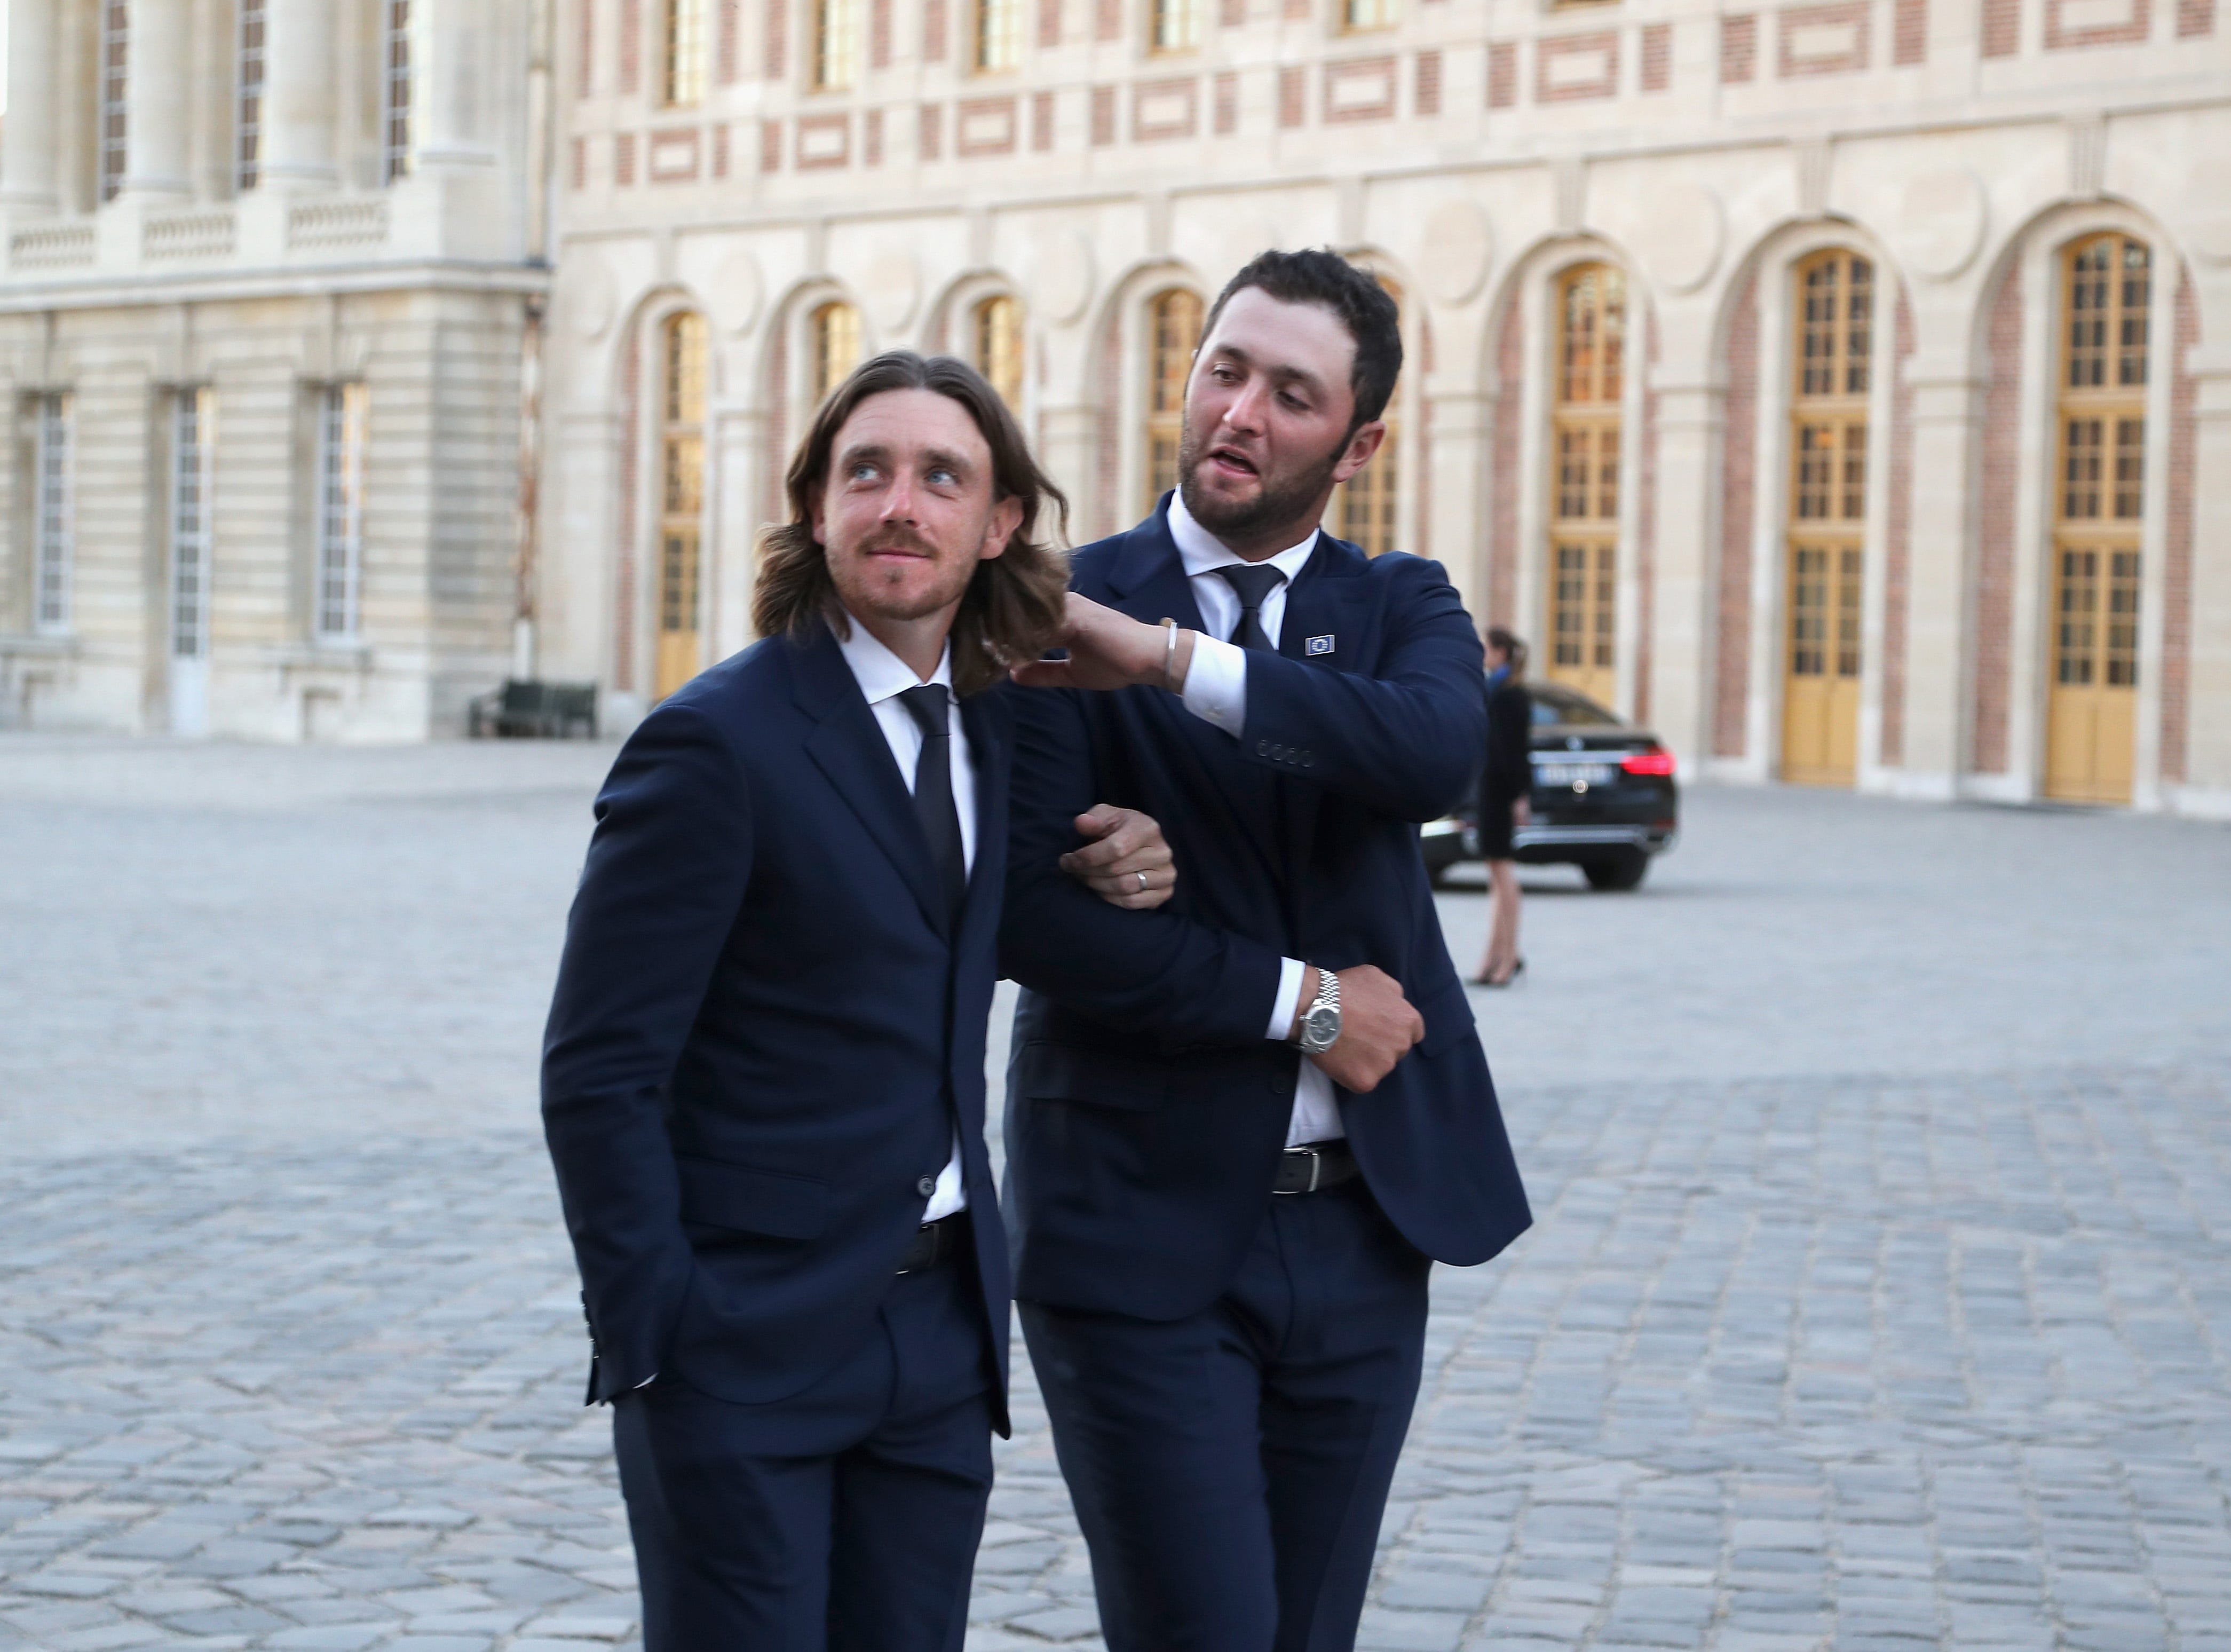 European players Tommy Fleetwood and Jon Rahm walk in arm and arm to the Palace of Versailles for the Ryder Cup gala Sept 26.